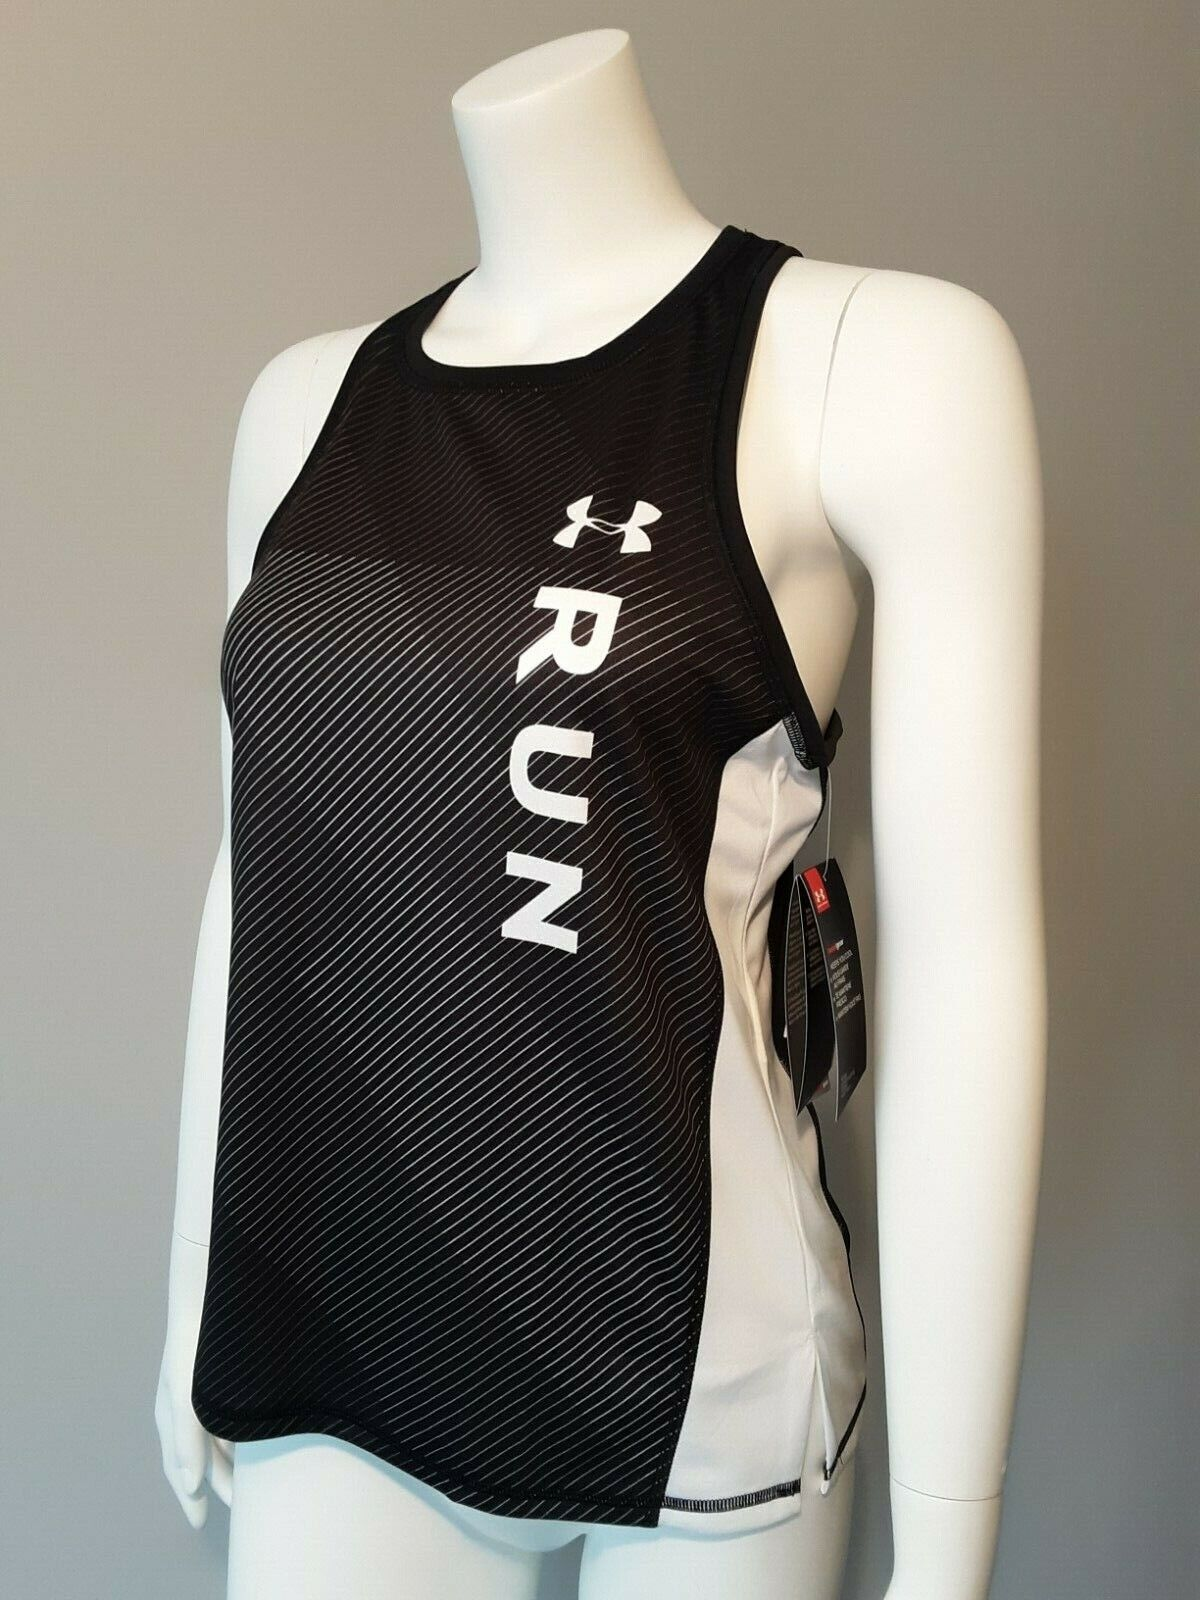 $40 WOMENS UNDER ARMOUR RUNNING TRAINING WORKOUT GYM TANK TO